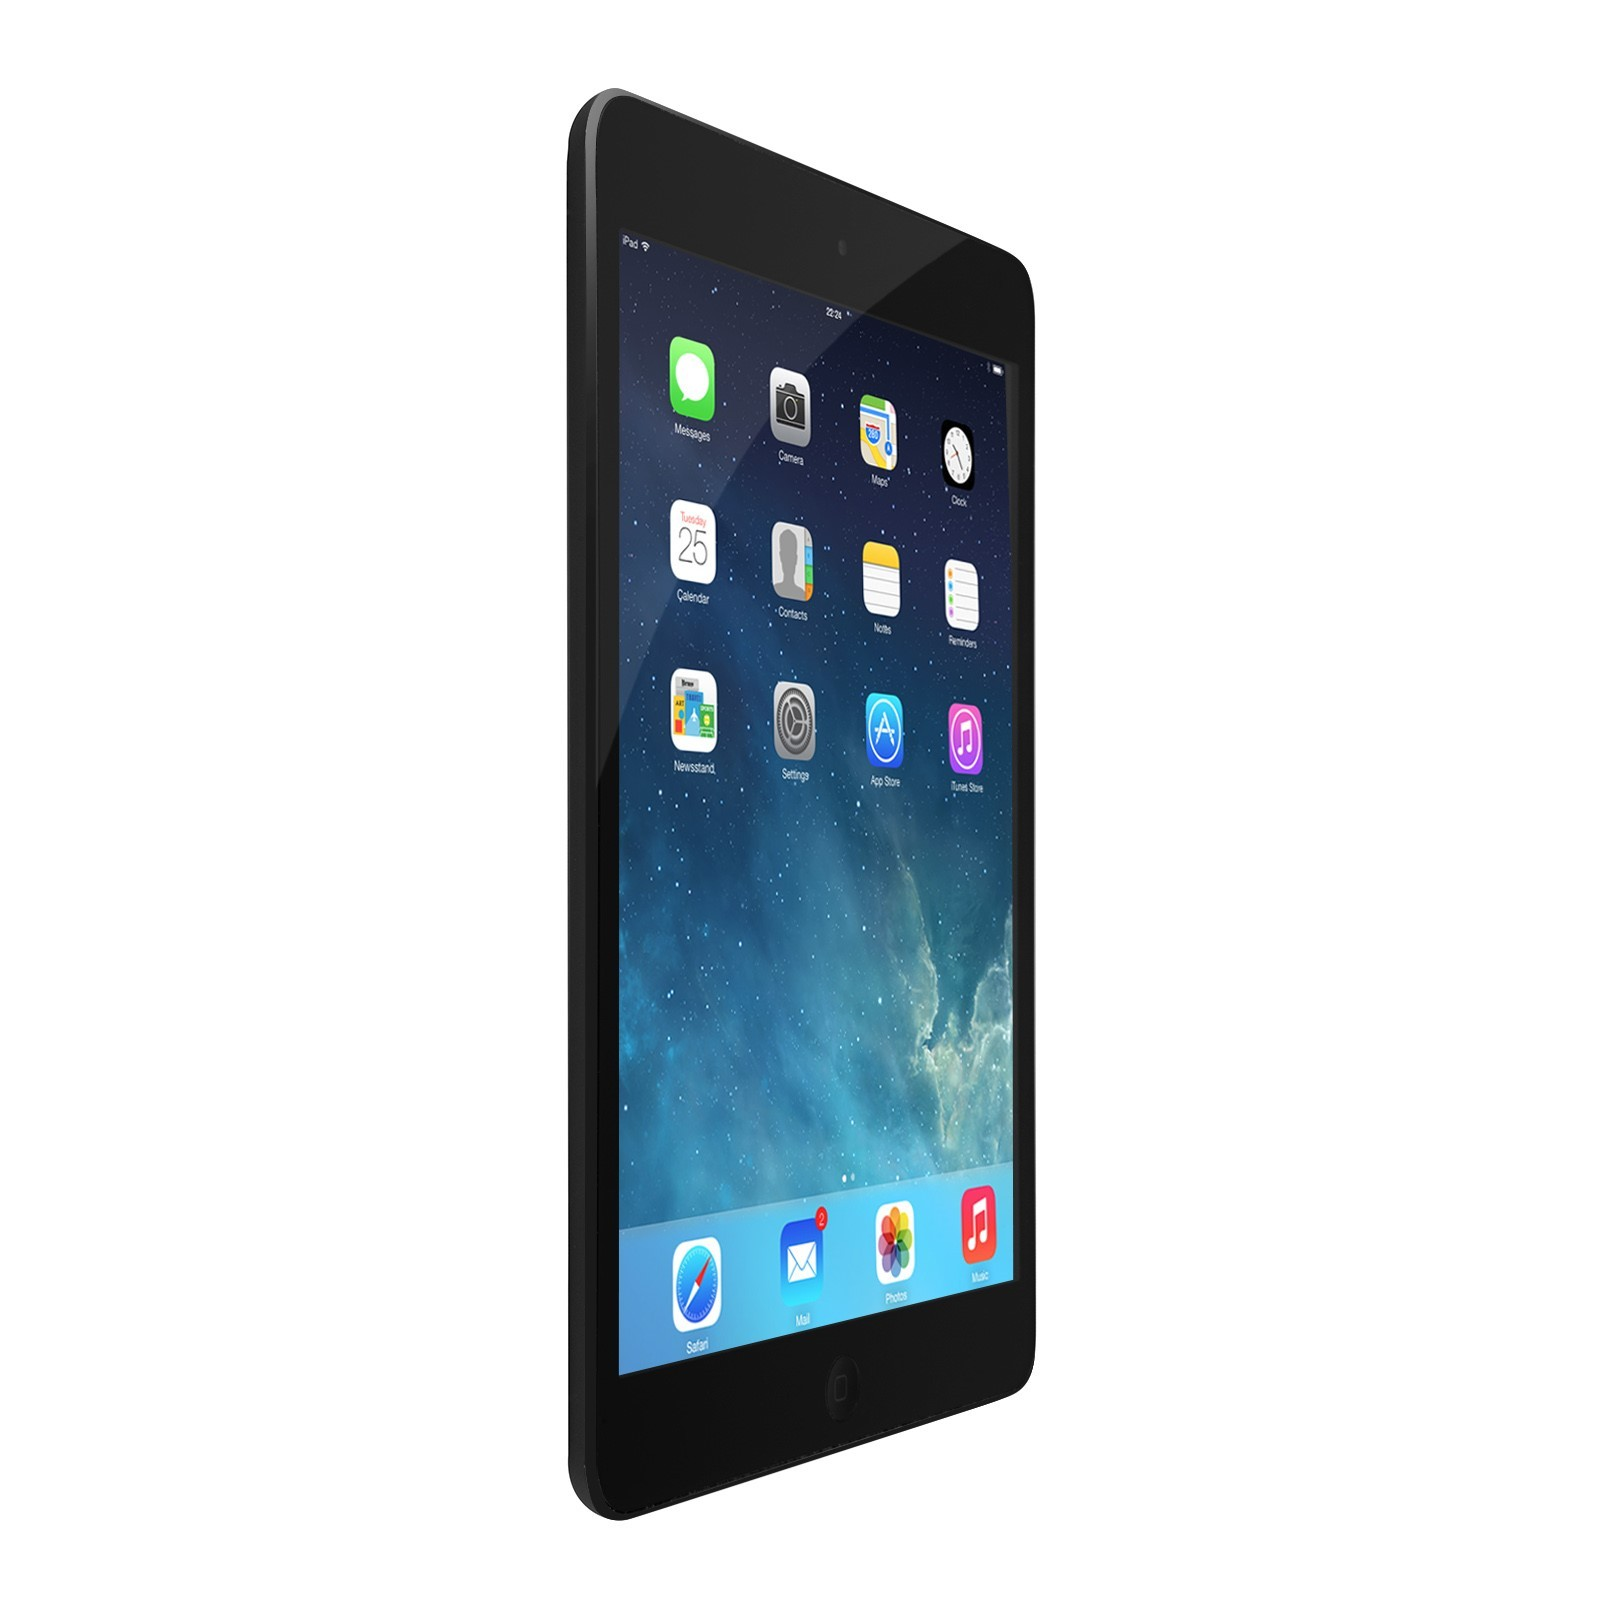 Apple IPad Mini MD528LL A 16GB WiFi Grade B